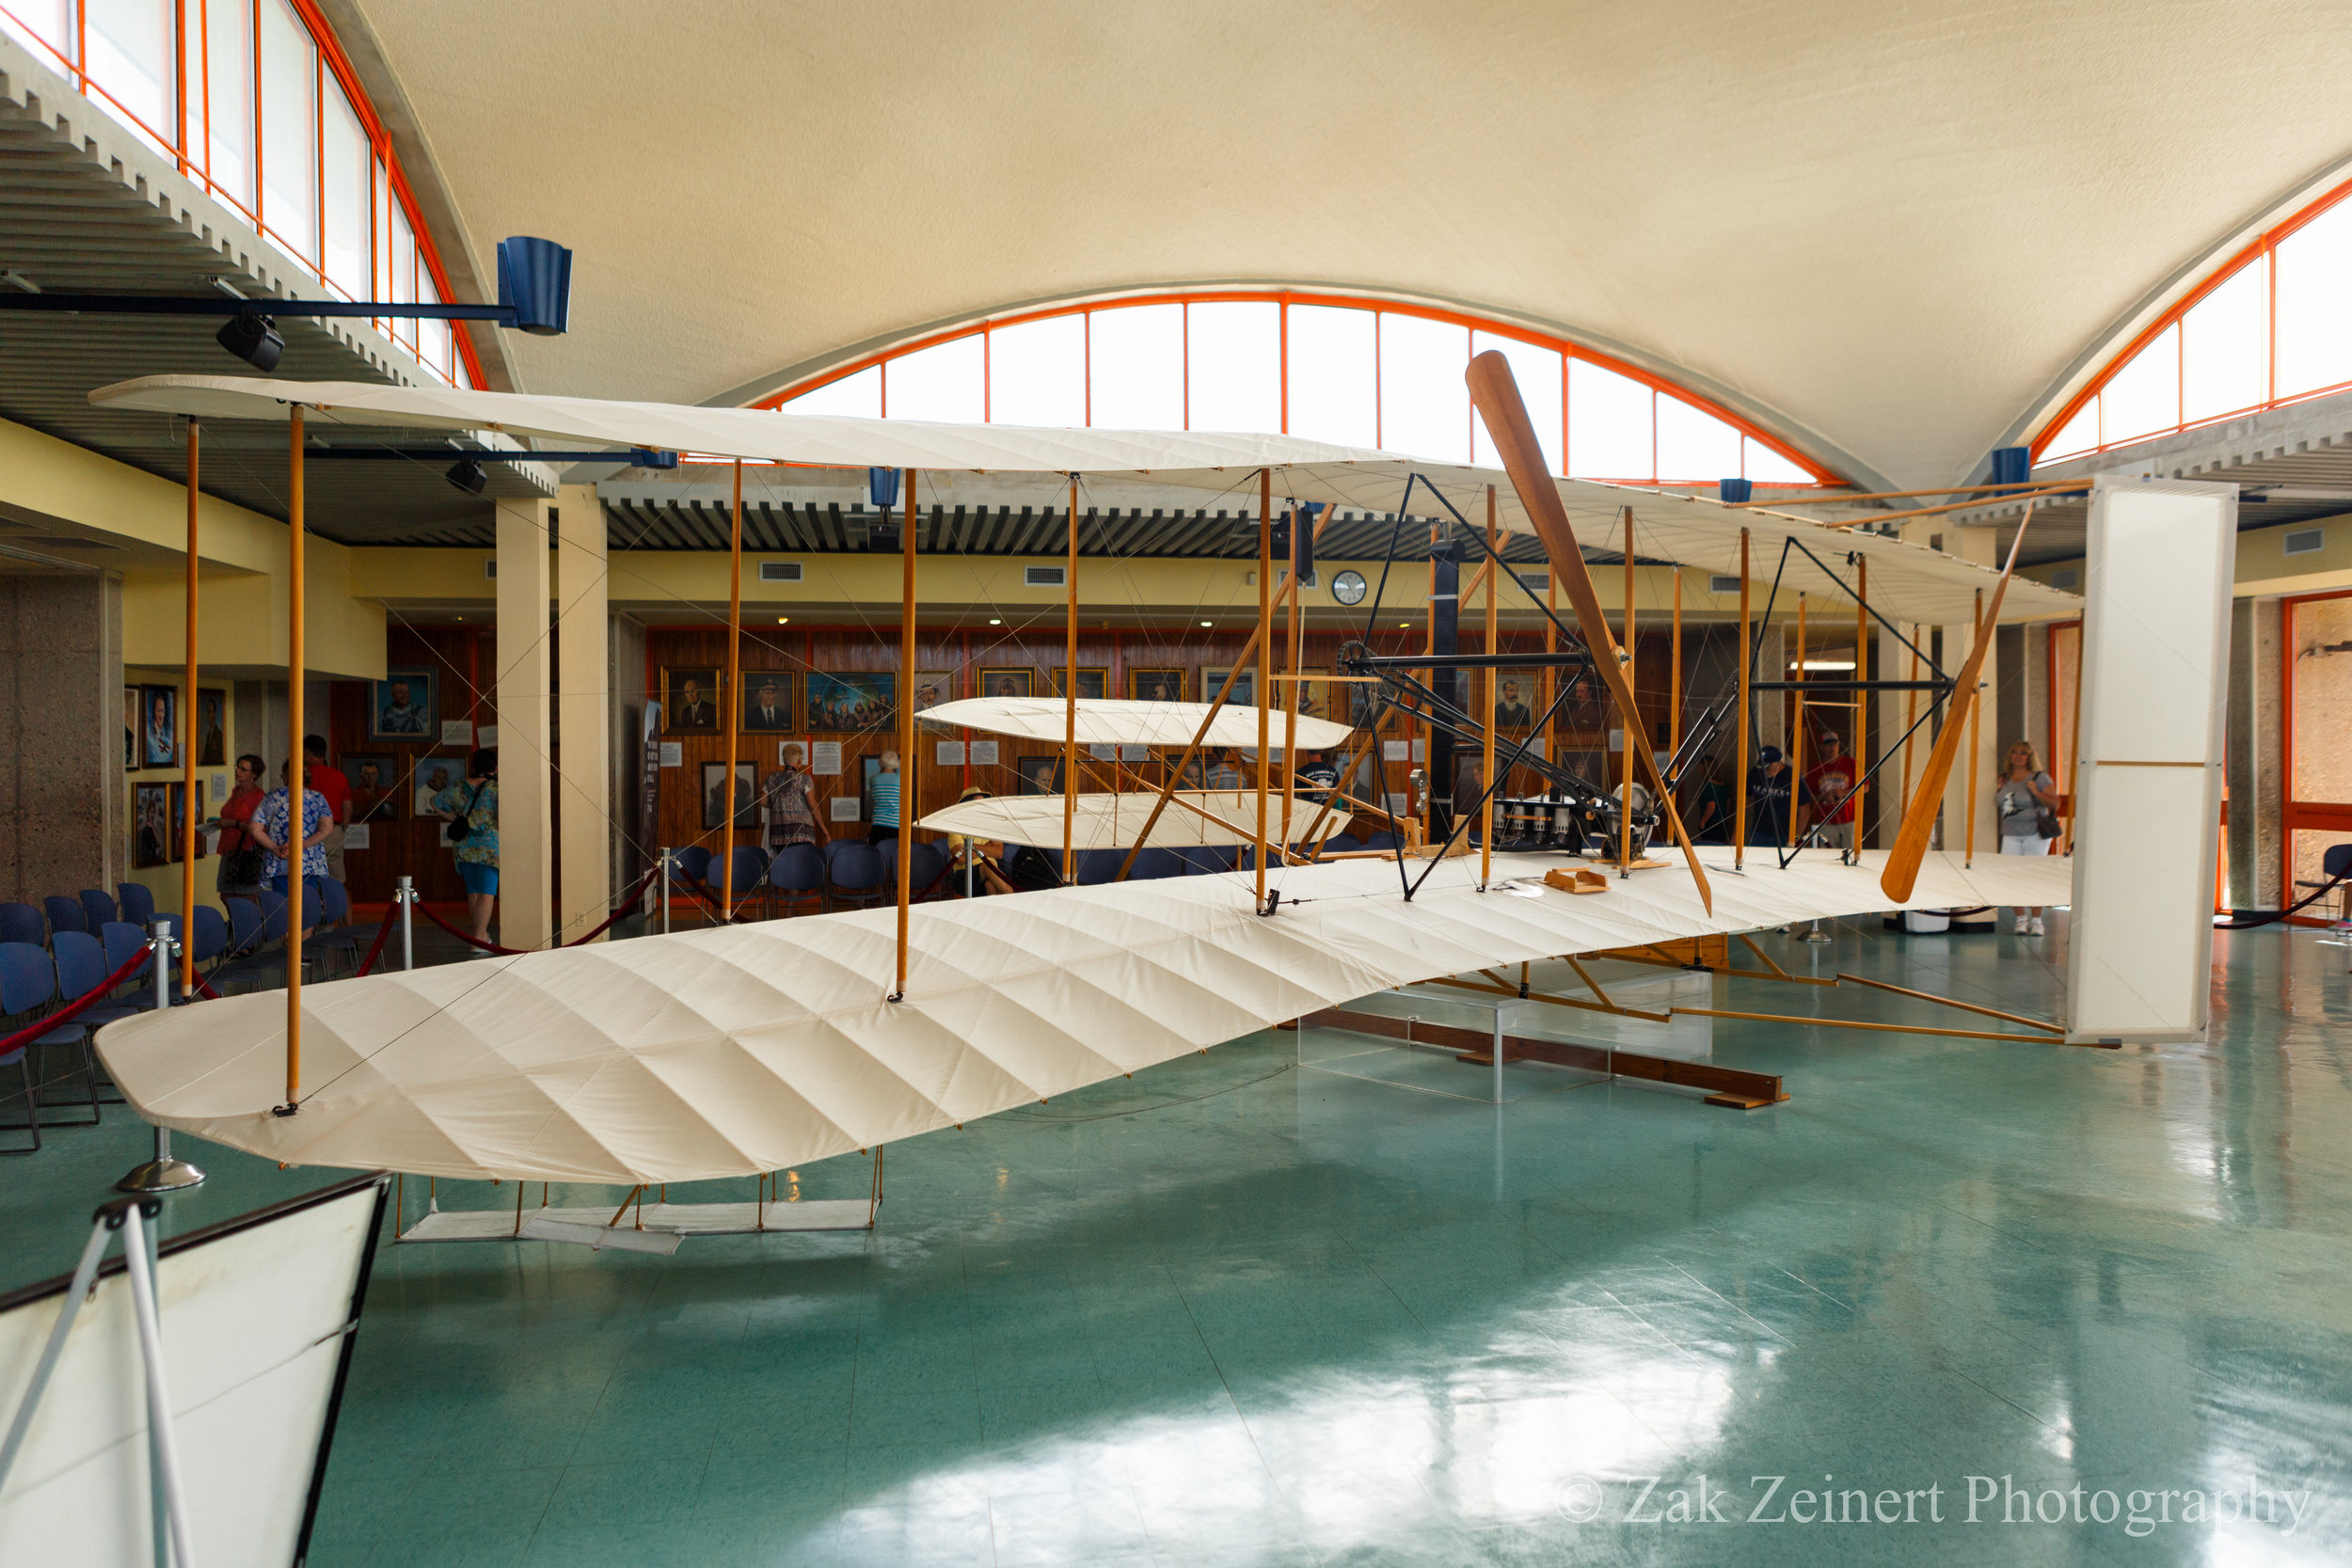 A replica of the Wright Flyer. The original is on display in the National Air and Space Museum in Washington DC.